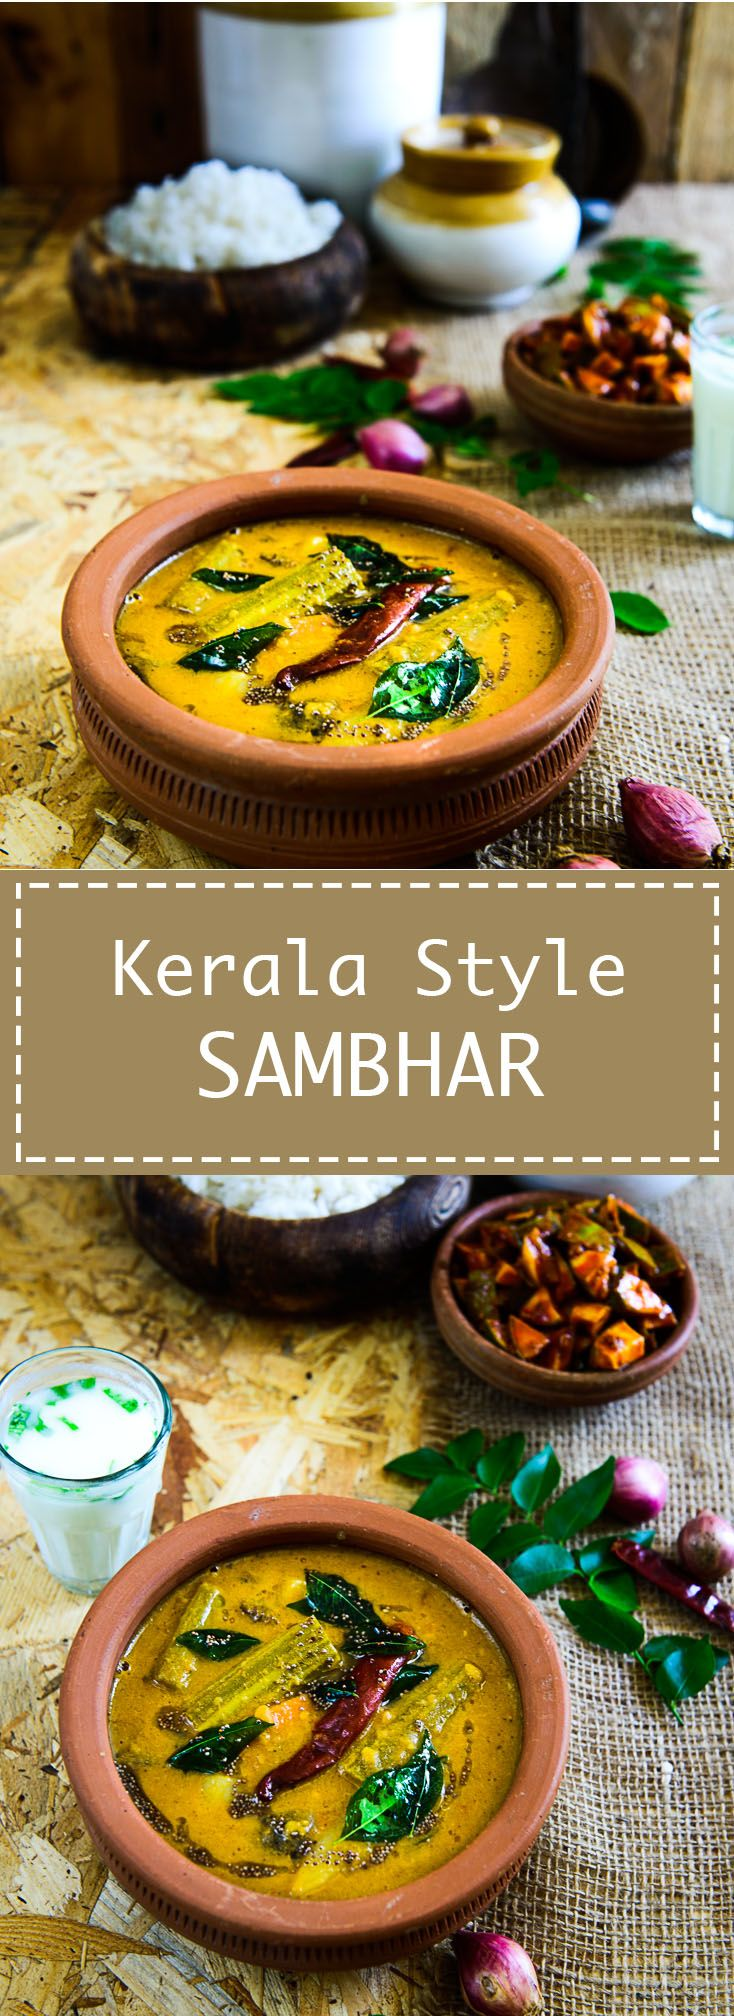 100 best kerala sadya recipes onam vishu images on pinterest kerala style sambar varutharacha sambar onam sadya sambhar recipelentil dishesveg forumfinder